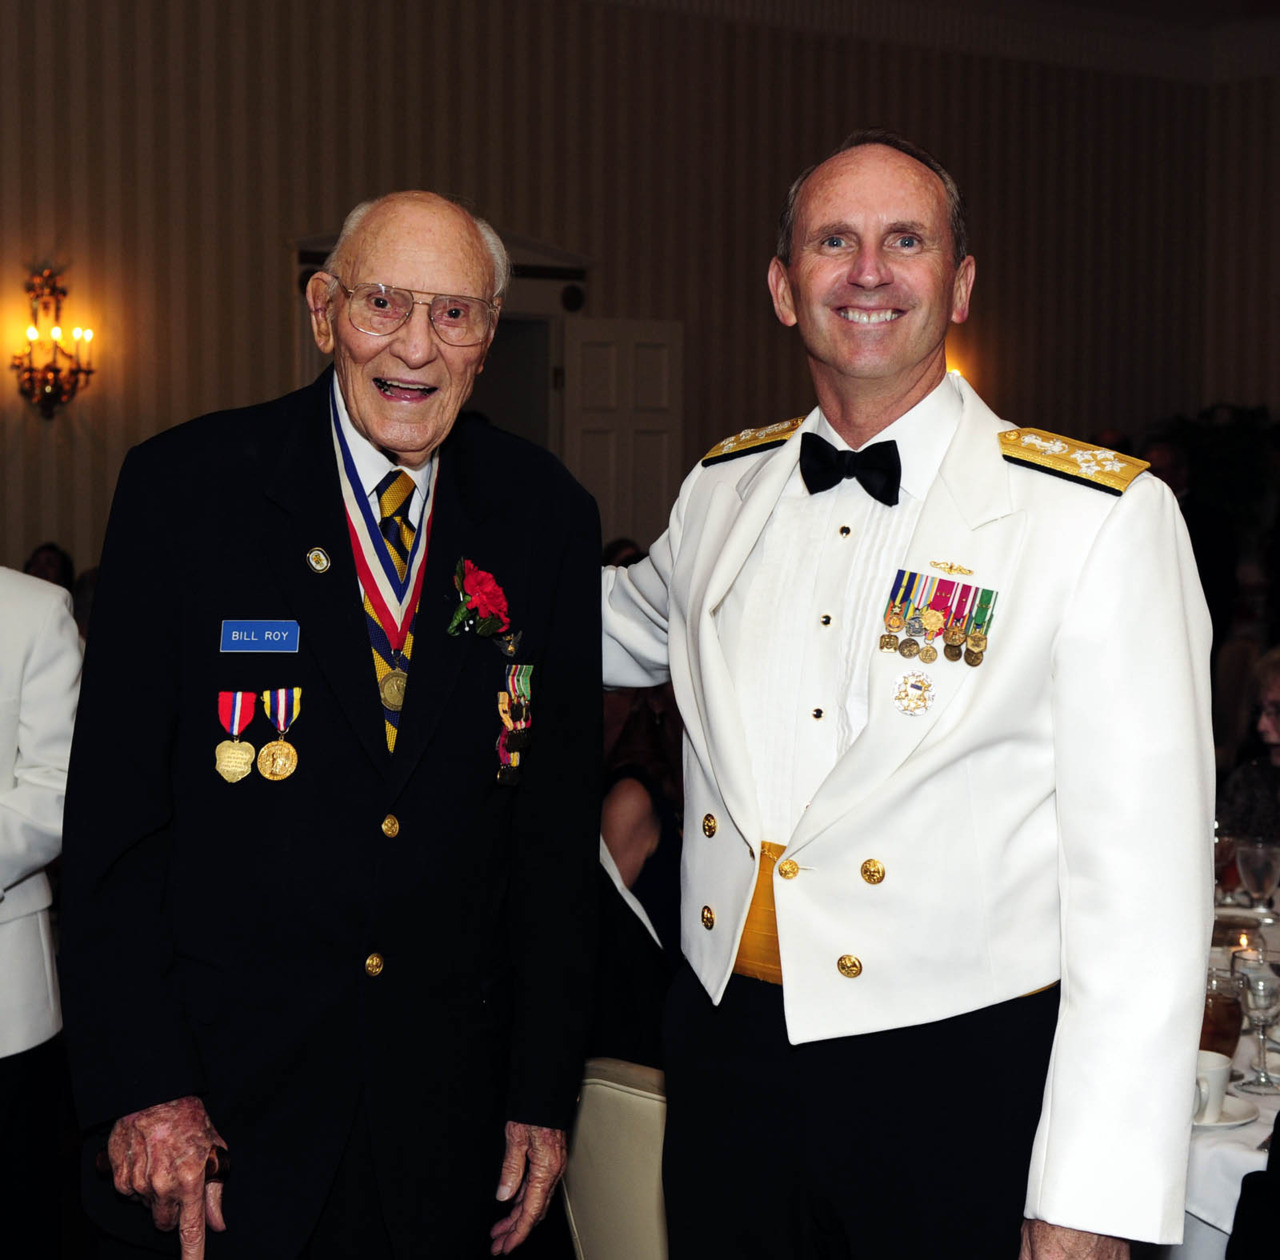 CNO and Symonds Talks Highlight 2012 Midway Commemoration Dinner Event This past weekend at the Army Navy Country Club in Arlington, Virginia, some 200 guests gathered to salute seven veterans in attendance, and the memories of  thousands more, who fought in one of the greatest battles in naval history – the Battle of Midway. (read the full story here)Above photo: Chief of Naval Operations Admiral Jonathan Greenert poses for a photo with Battle of Midway veteran William Roy. See our earlier post with Roy's firsthand account of the sinking of USS Yorktown here. (U.S. Navy photo 120603-N-WL435-017 by Mass Communication Specialist 1st Class Peter D. Lawlor/Released).